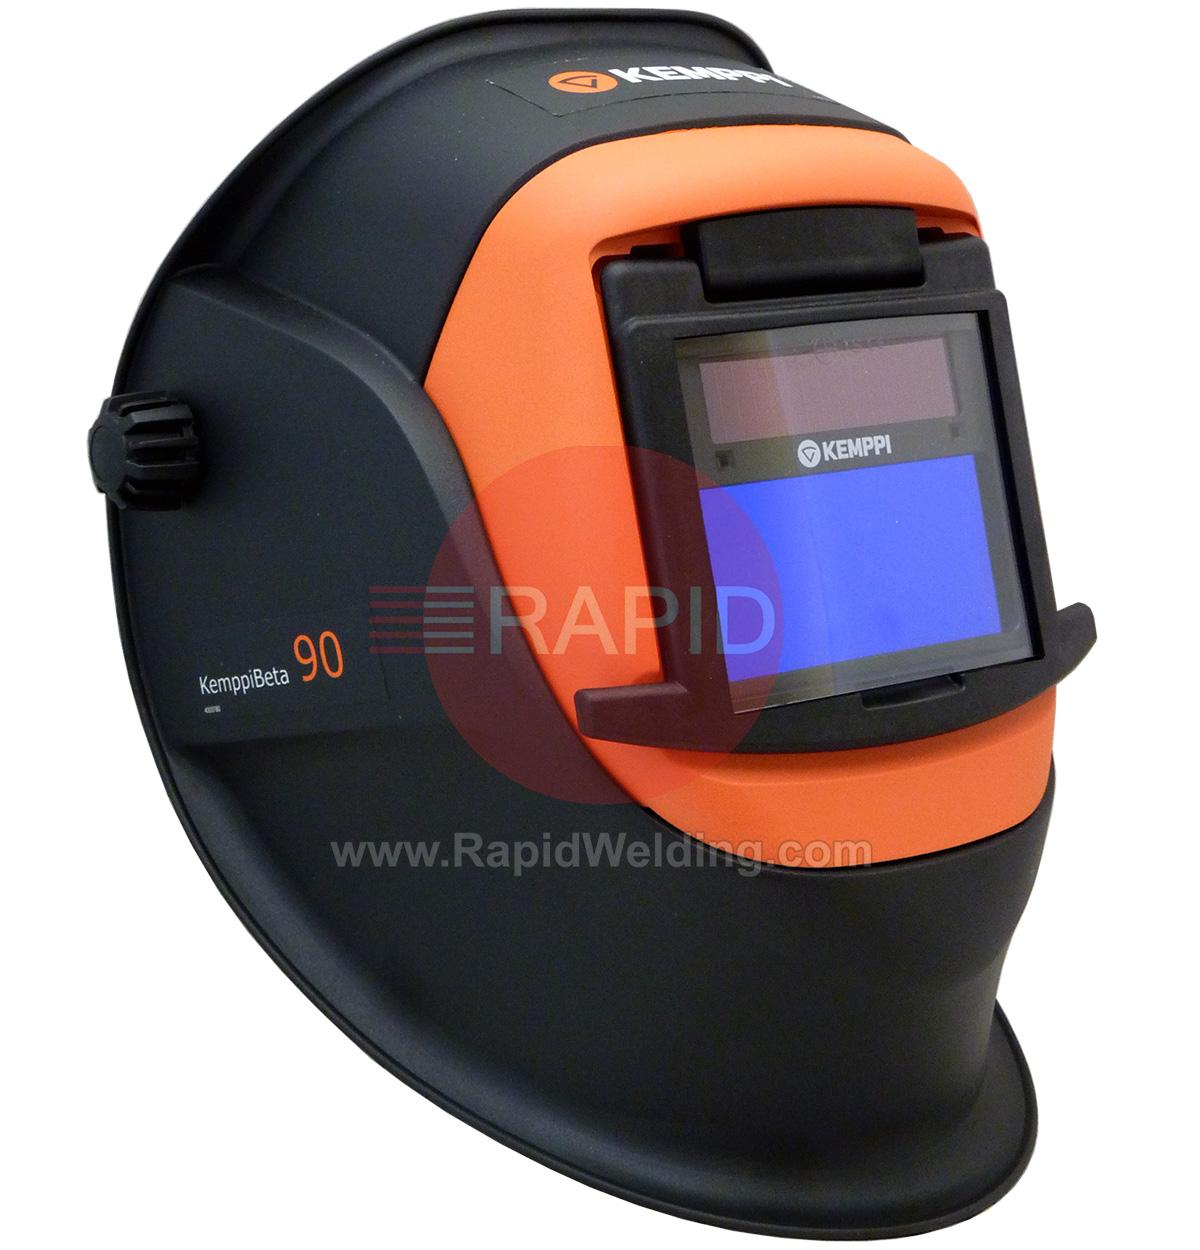 9873047  Kemppi Beta 90X Welding Helmet. Fitted With Variable Shade 4/9-13 EW Auto Darkening Filter. Flip Front For Grinding